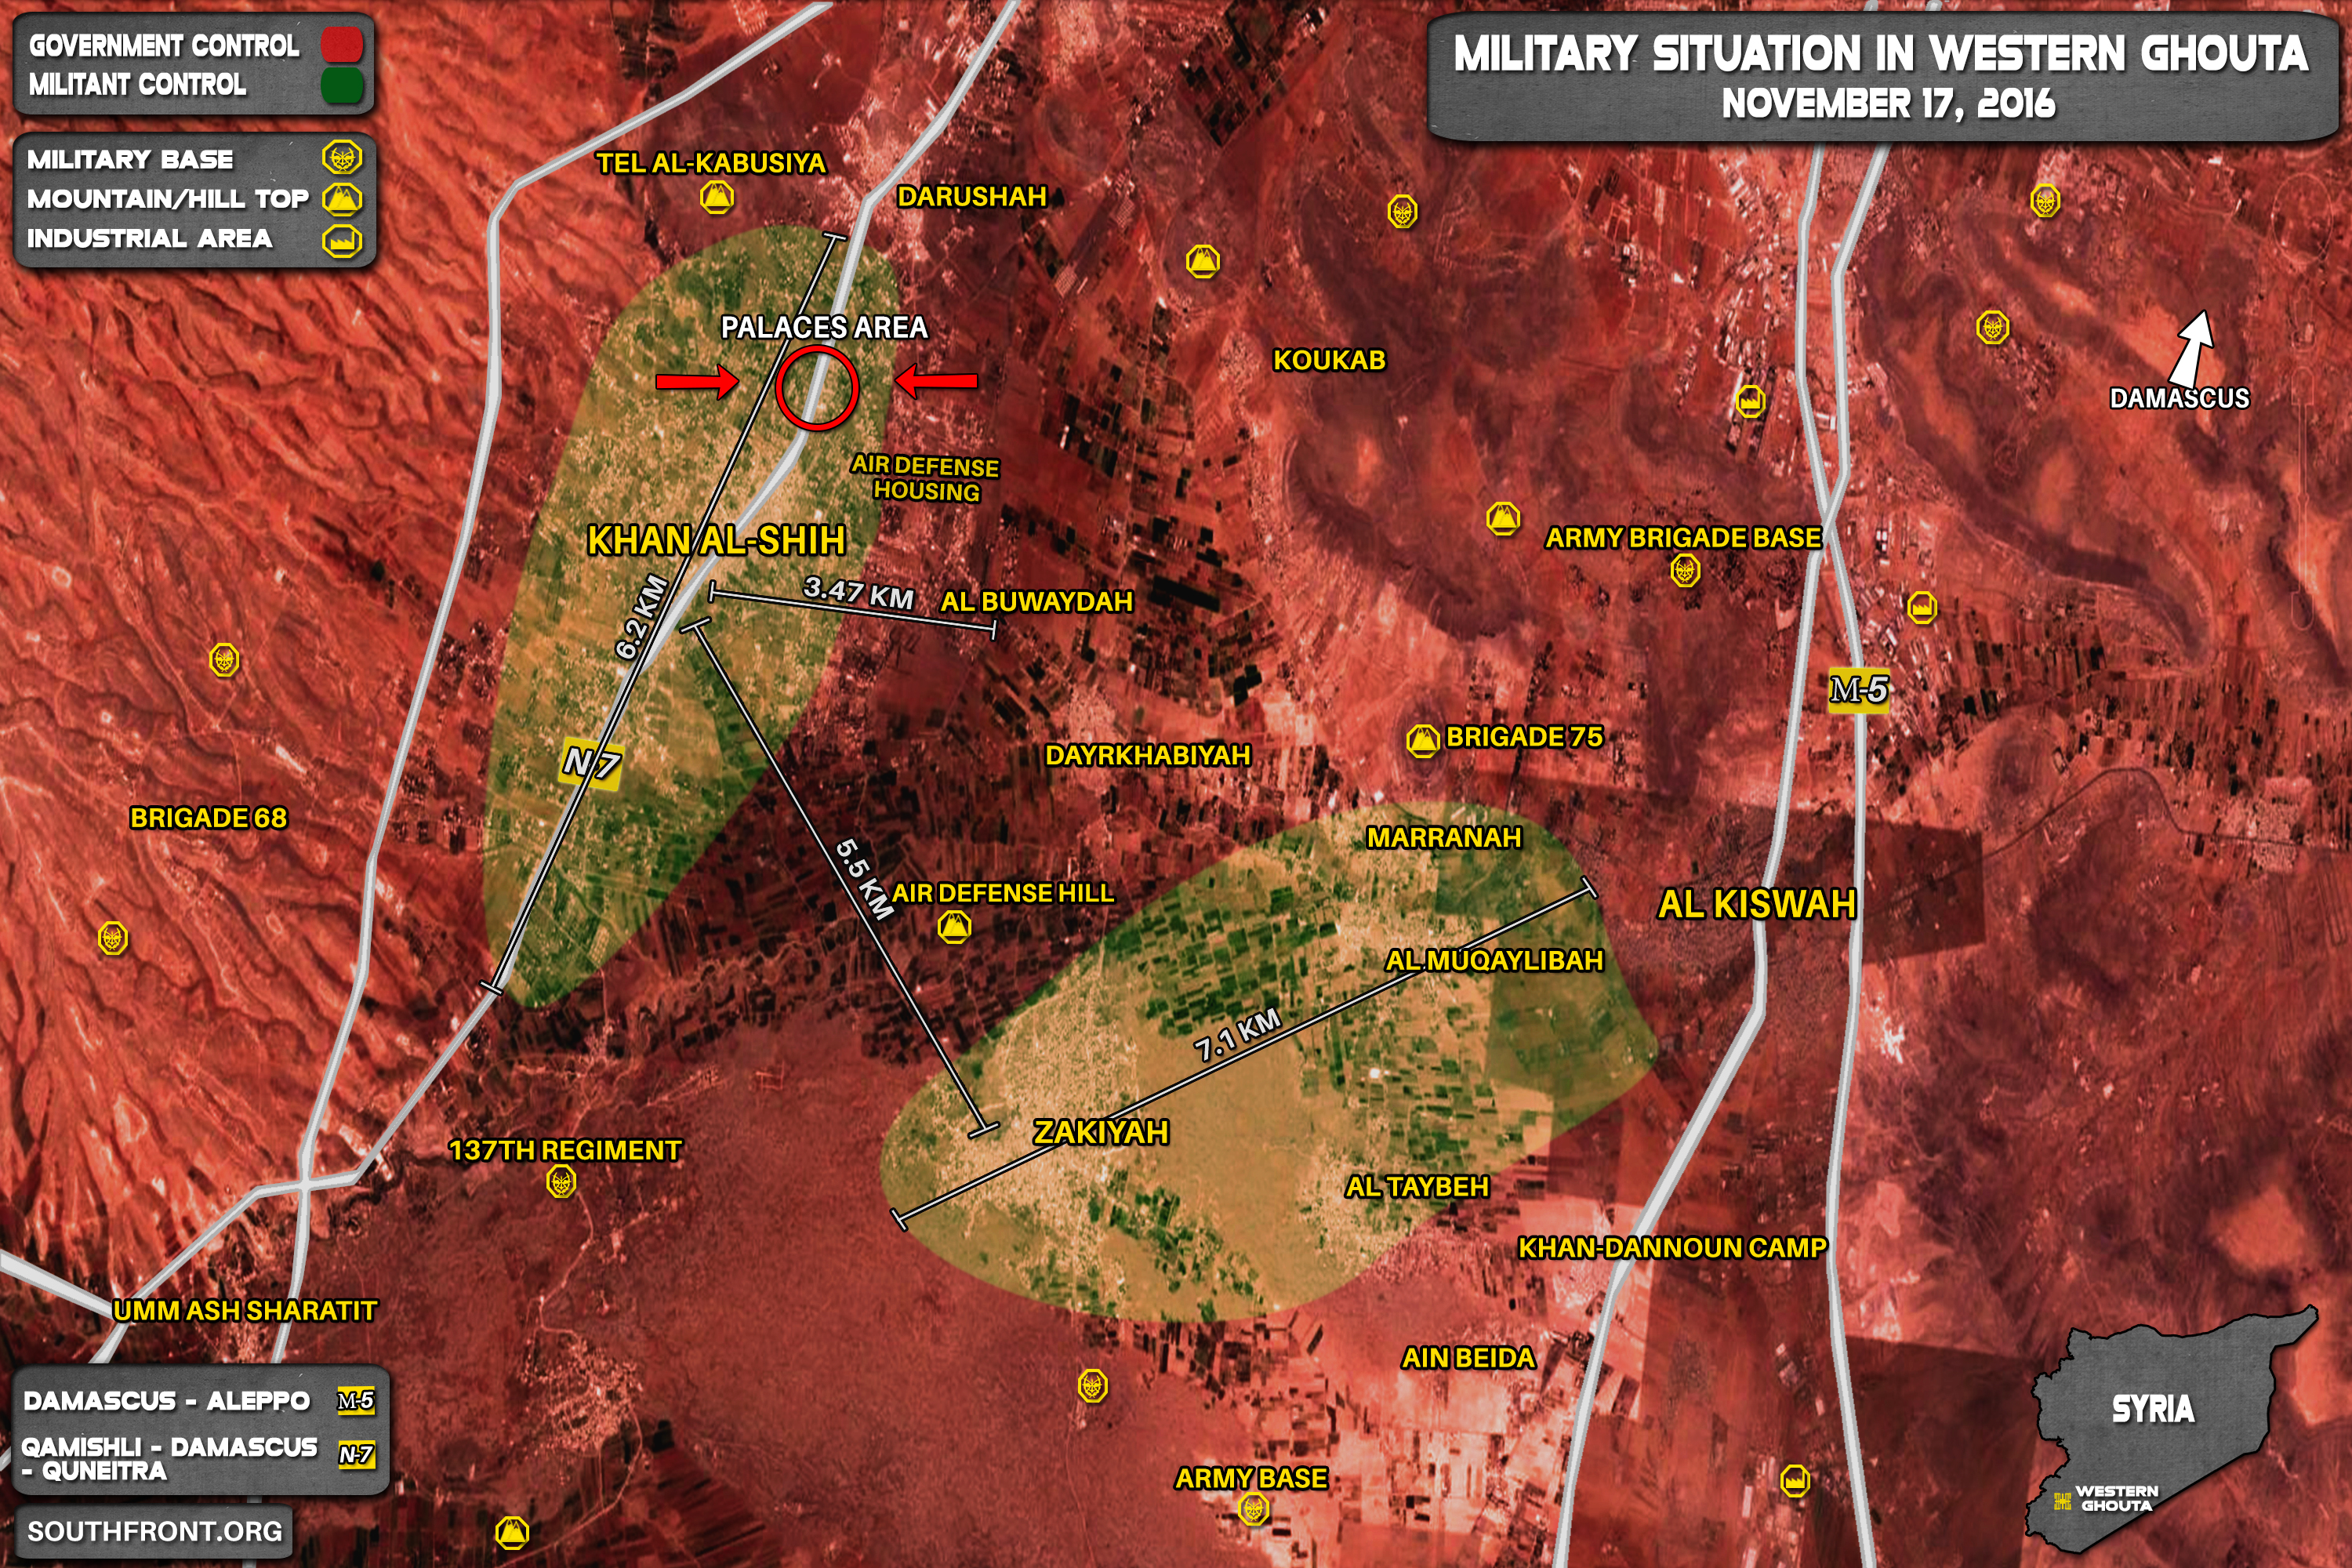 Govt Forces Advancing in Khan al-Shih Pocket in Western Ghouta